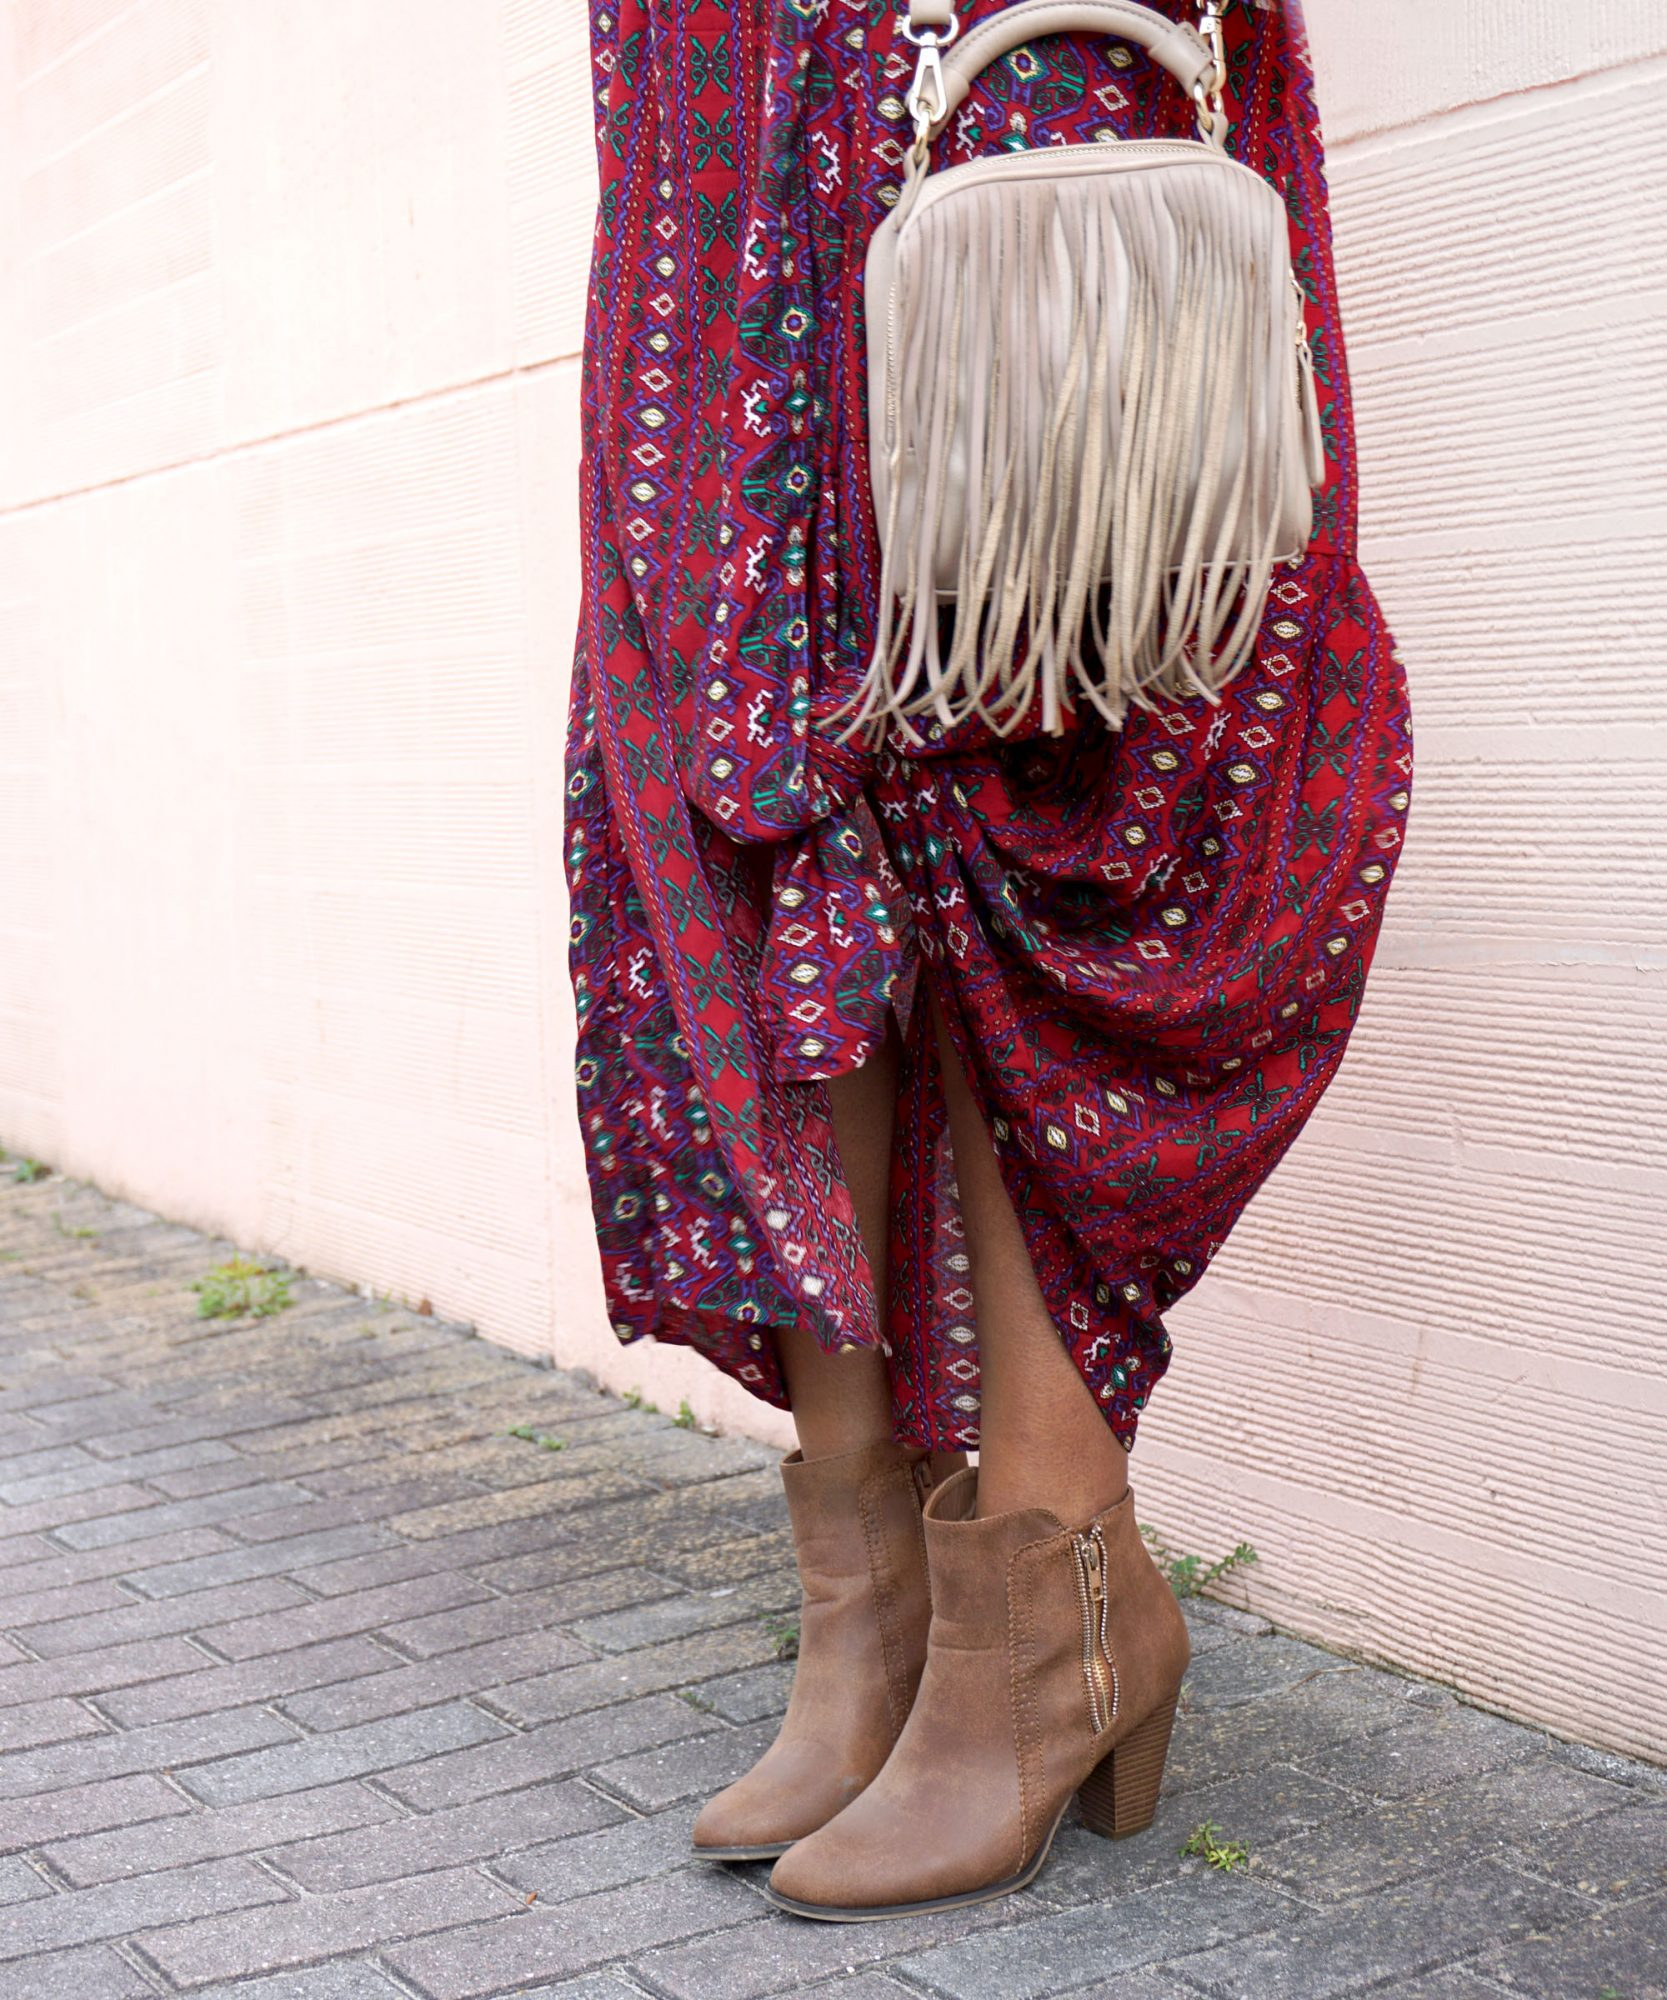 Zaful Tribal Print Festival Fashion Dress